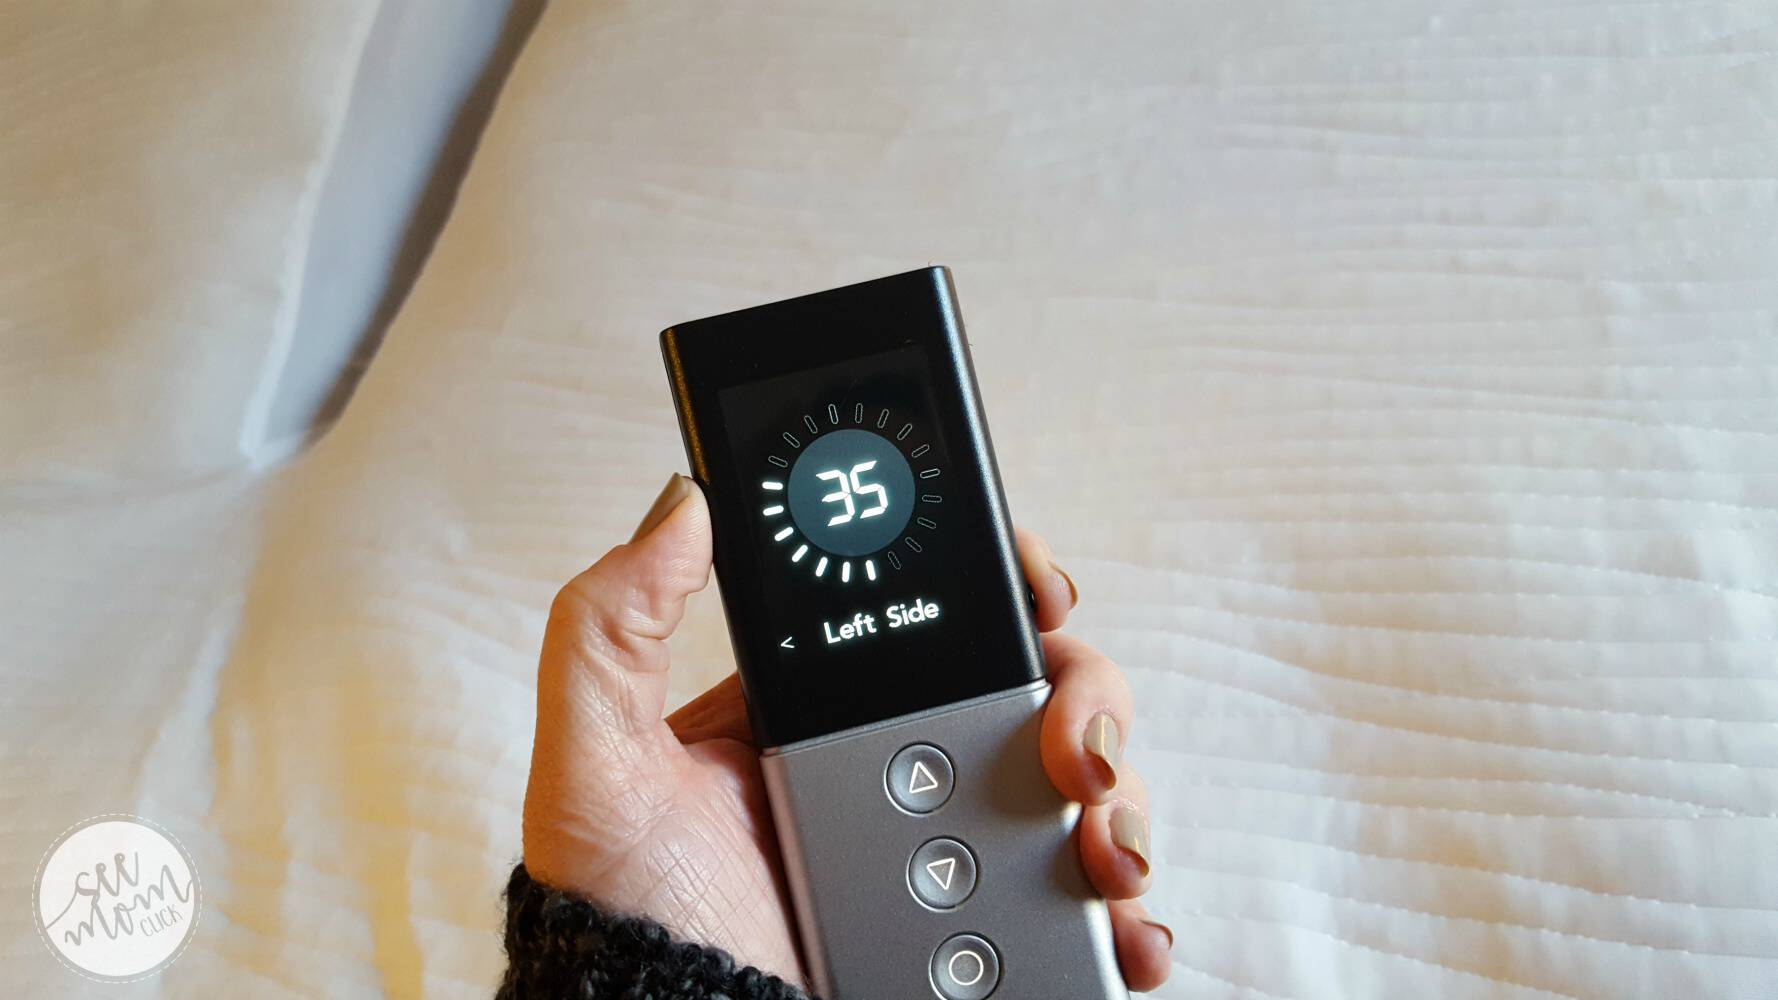 Wondering how a Sleep Number bed actually works? Here's a quick video demo of the Sleep Number i8 Bed flex feature and sleep number adjustment.